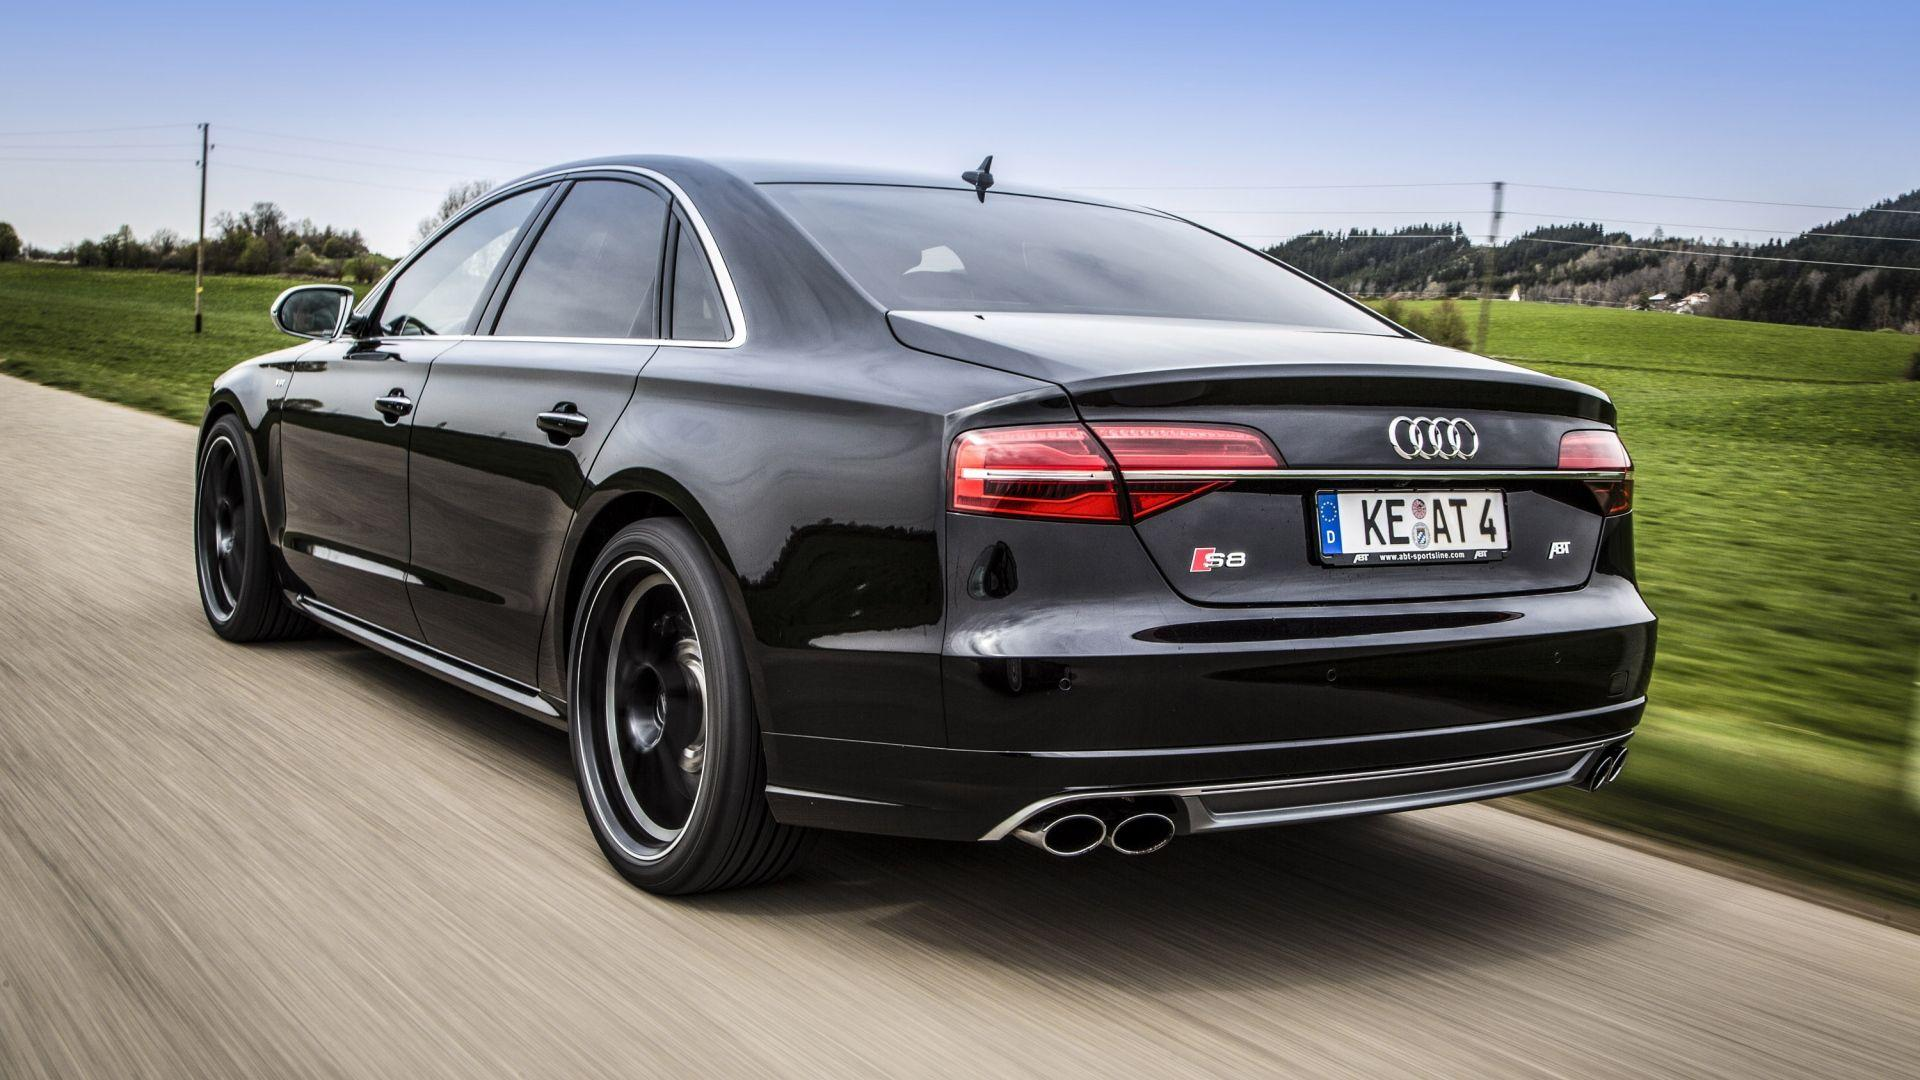 Download Wallpapers 1920x1080 Audi, S8, Abt sportsline, Abt, Tuning